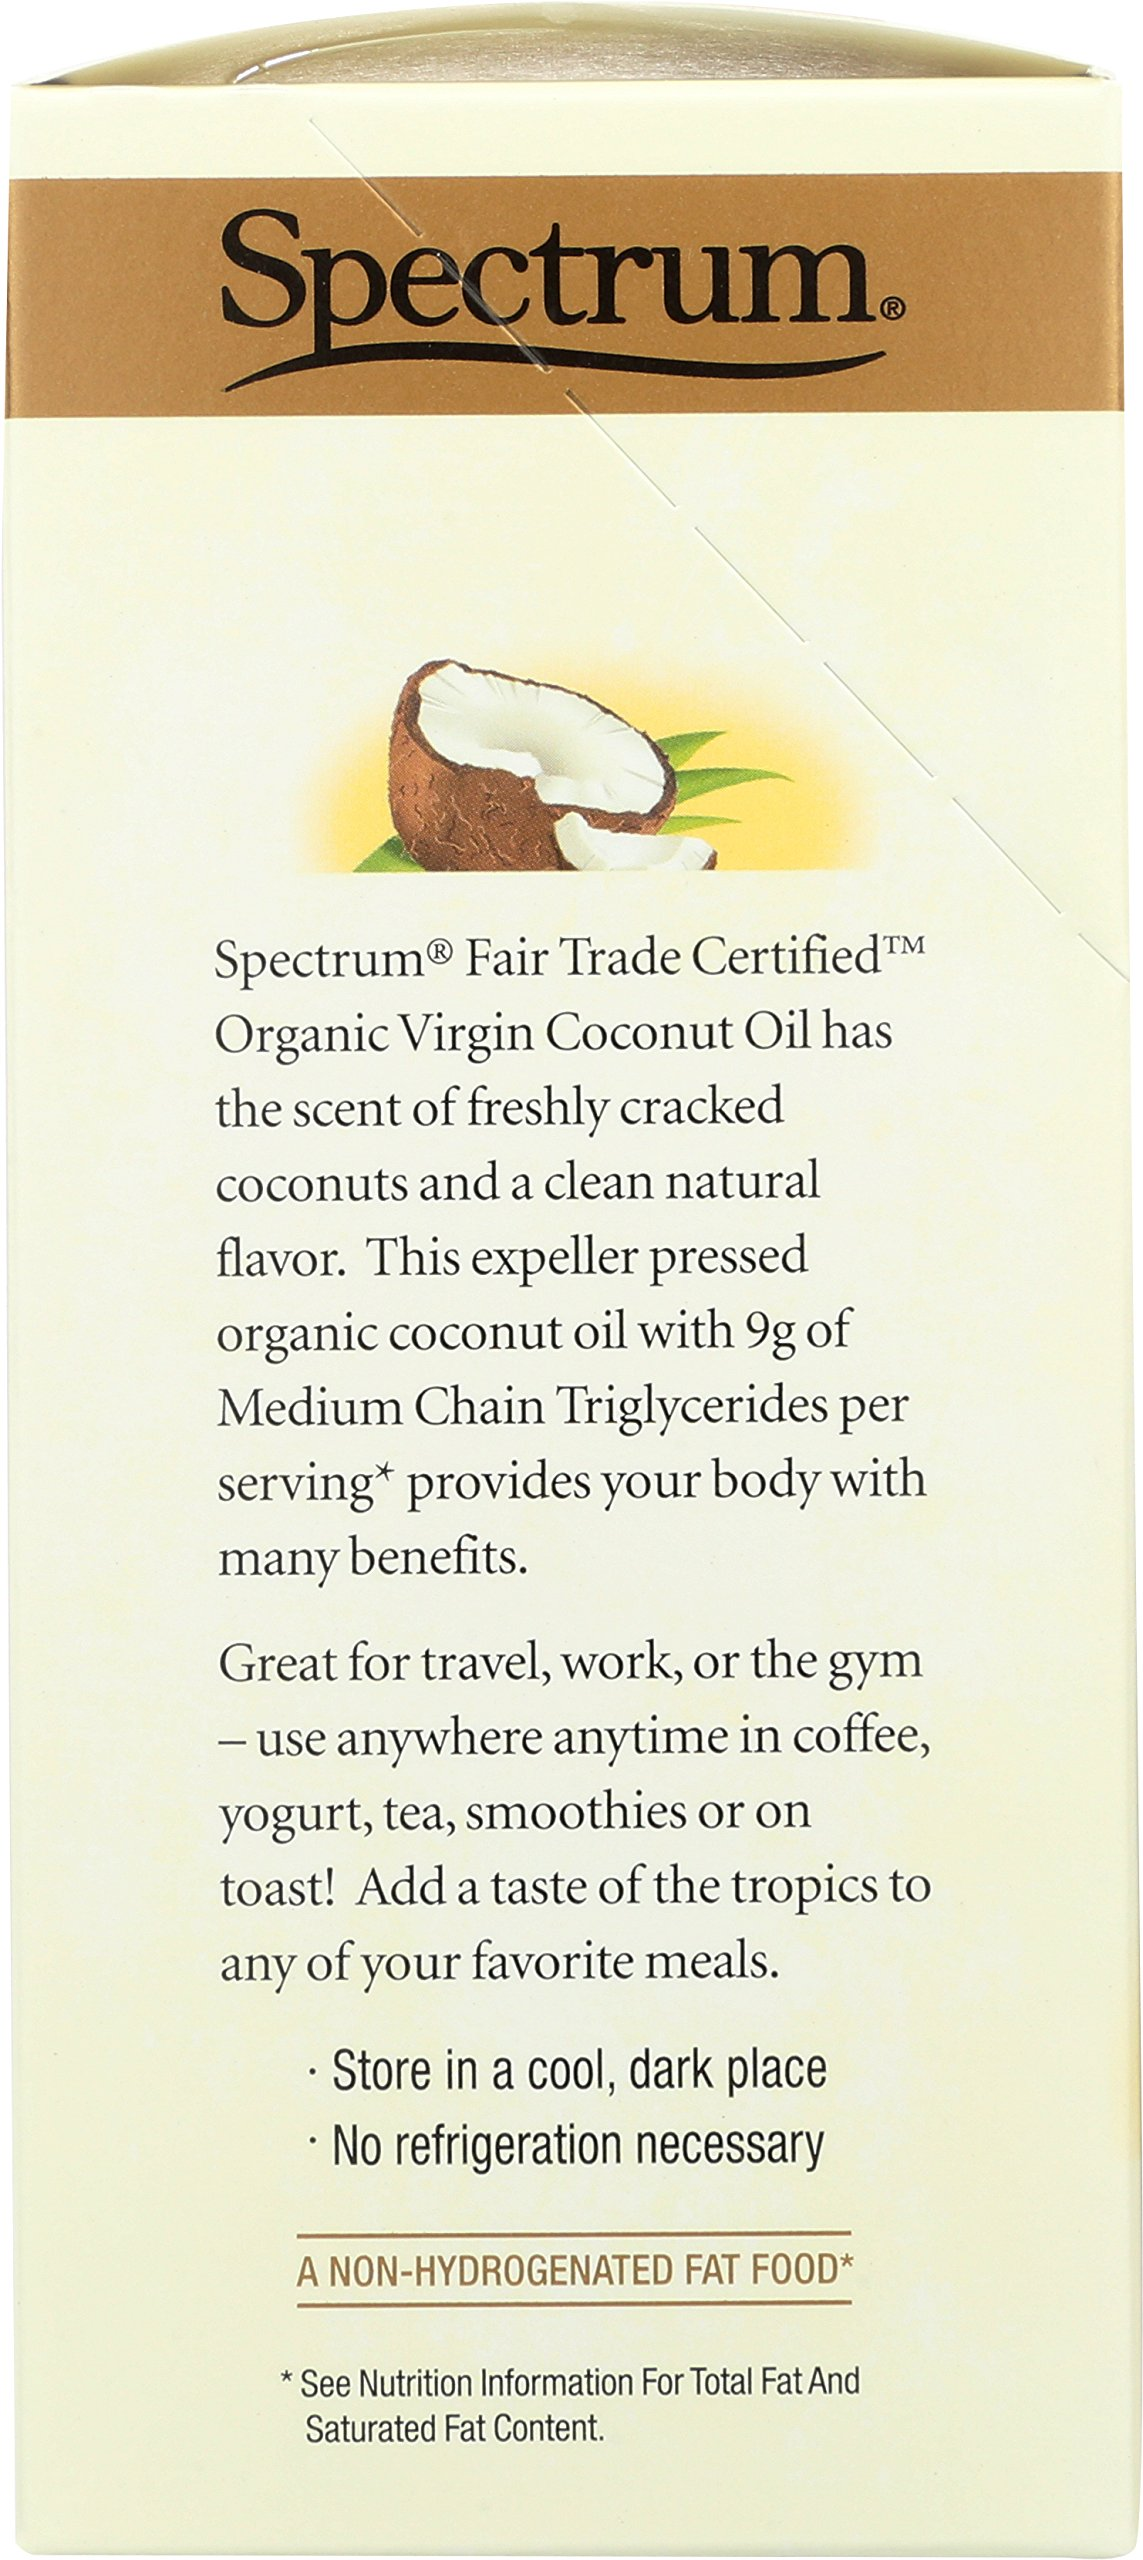 Spectrum Naturals Organic Unrefined Virgin Coconut Oil Packets, 10 Count (Pack of 3) by Spectrum (Image #2)